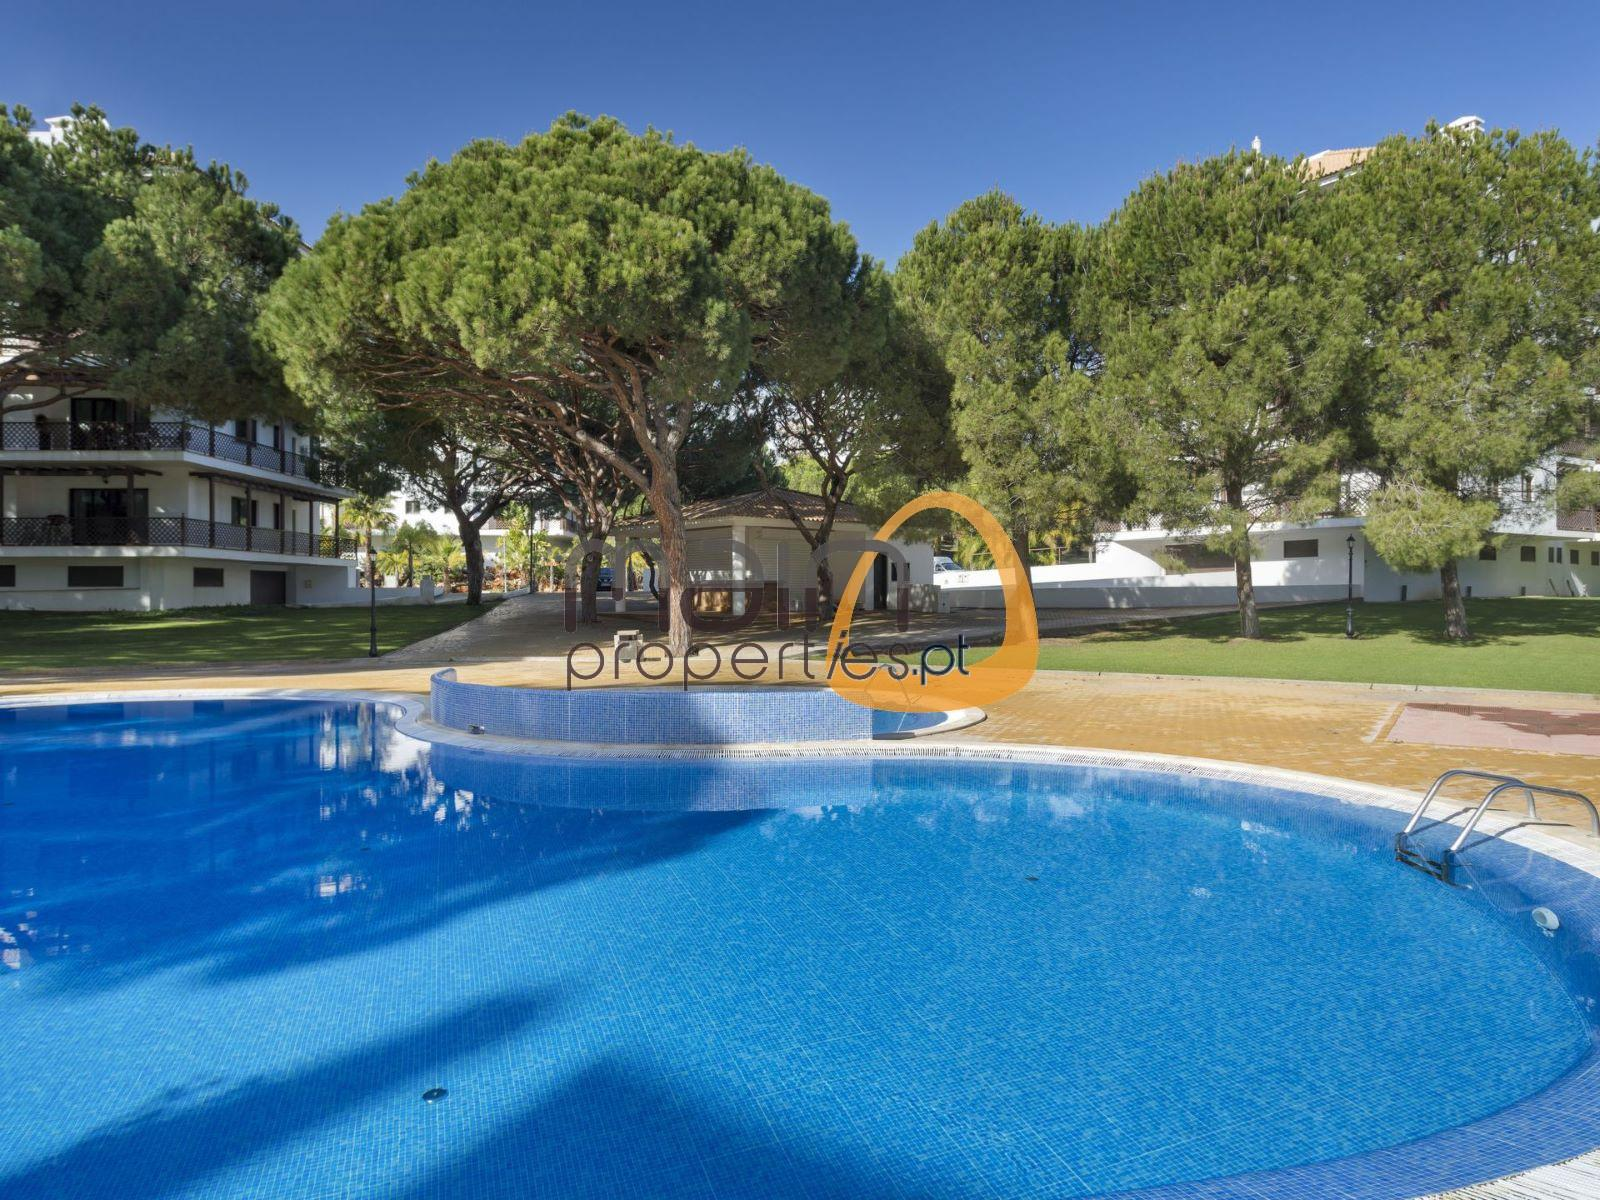 Luxury 2 bedroom apartment with pool near the beach in Albufeira